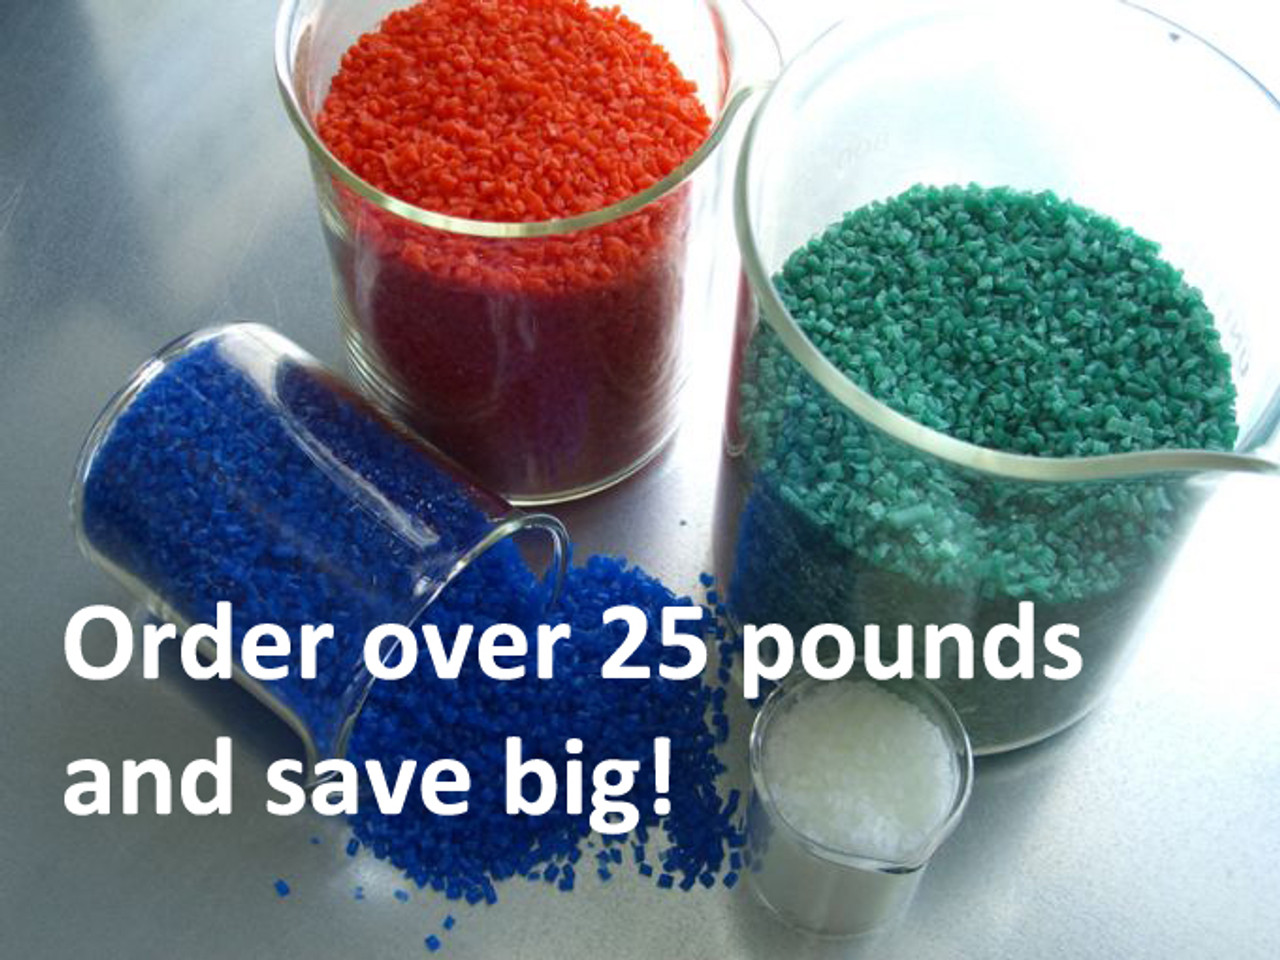 Bulk Pelletized Machinable Wax, purchase by the pound, 25+ pounds and save.